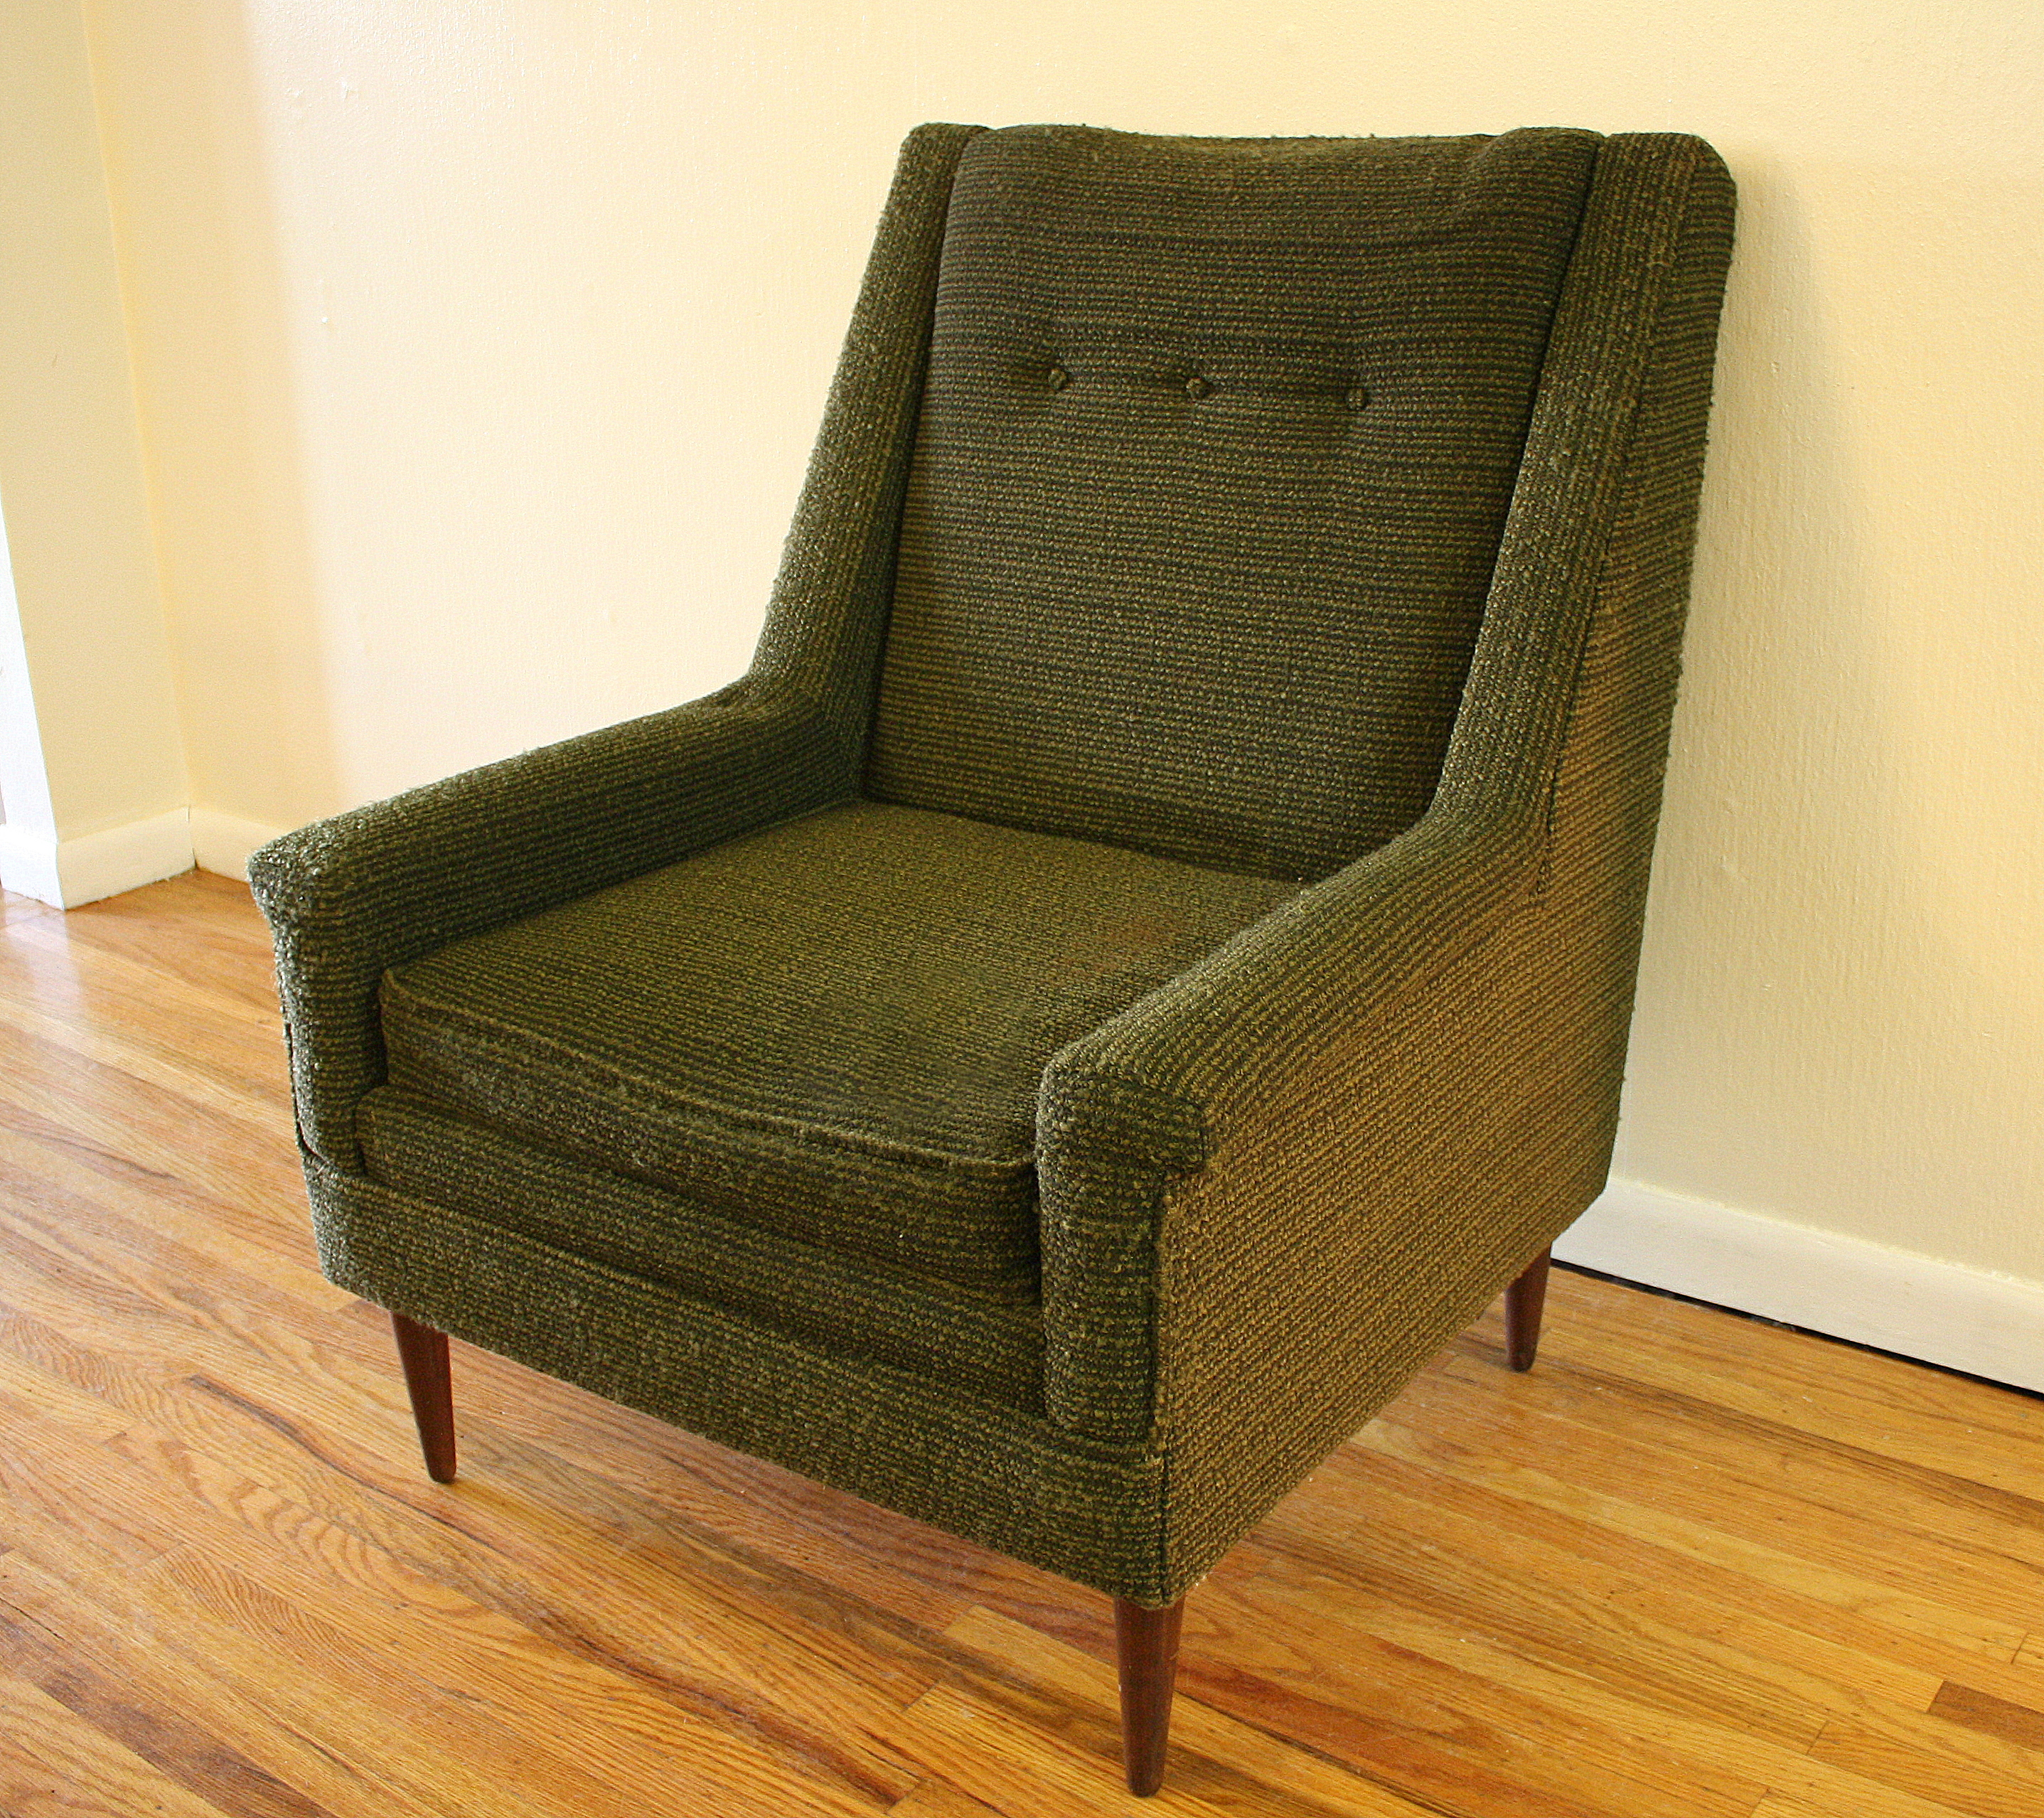 Green Upholstered Chair Green Upholstered Mcm Chair 1 Picked Vintage